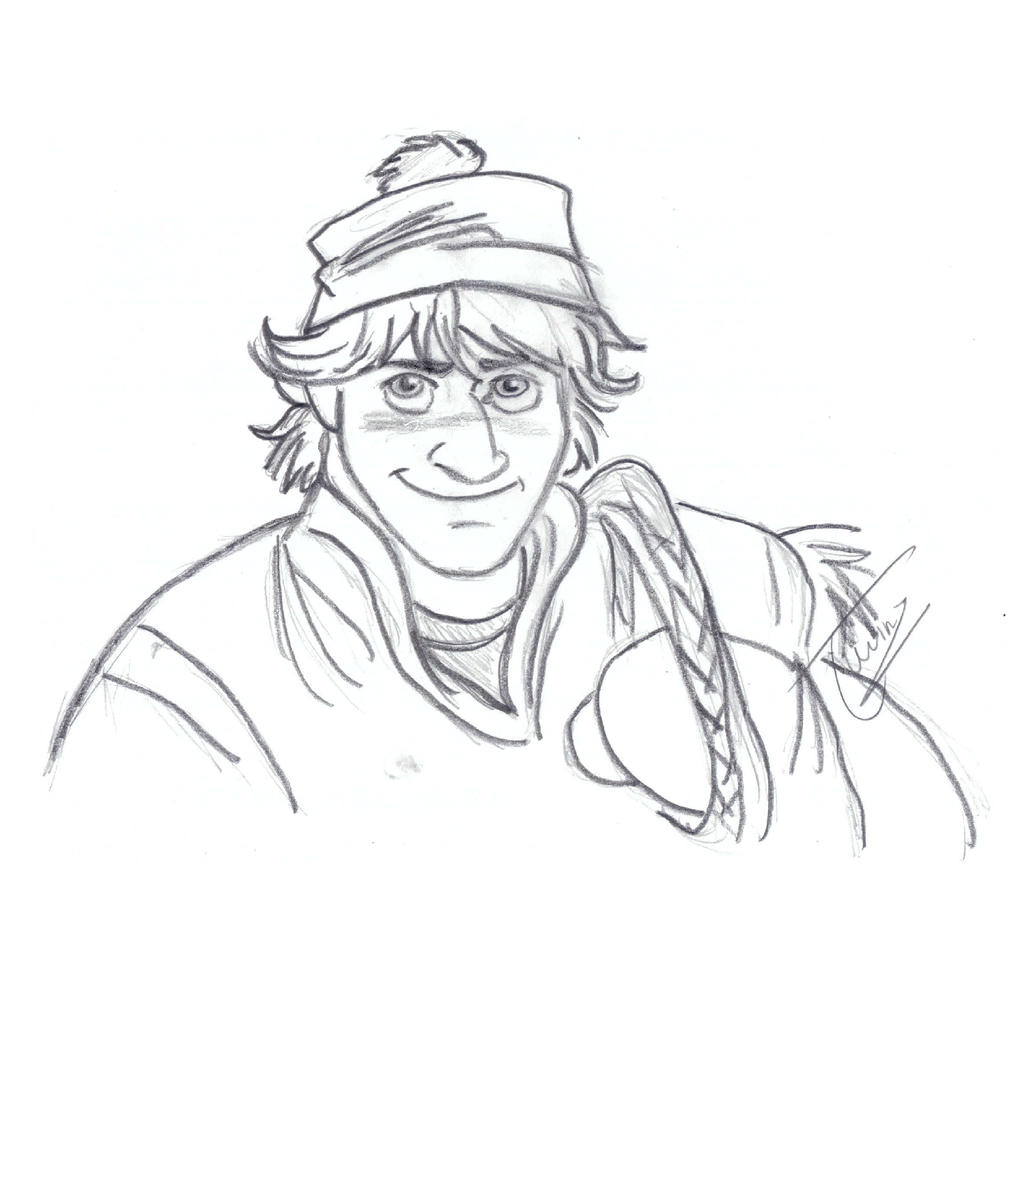 Kristoff - Sketch - Collab by Pussycat-PuppyHow To Draw Kristoff From Frozen Easy